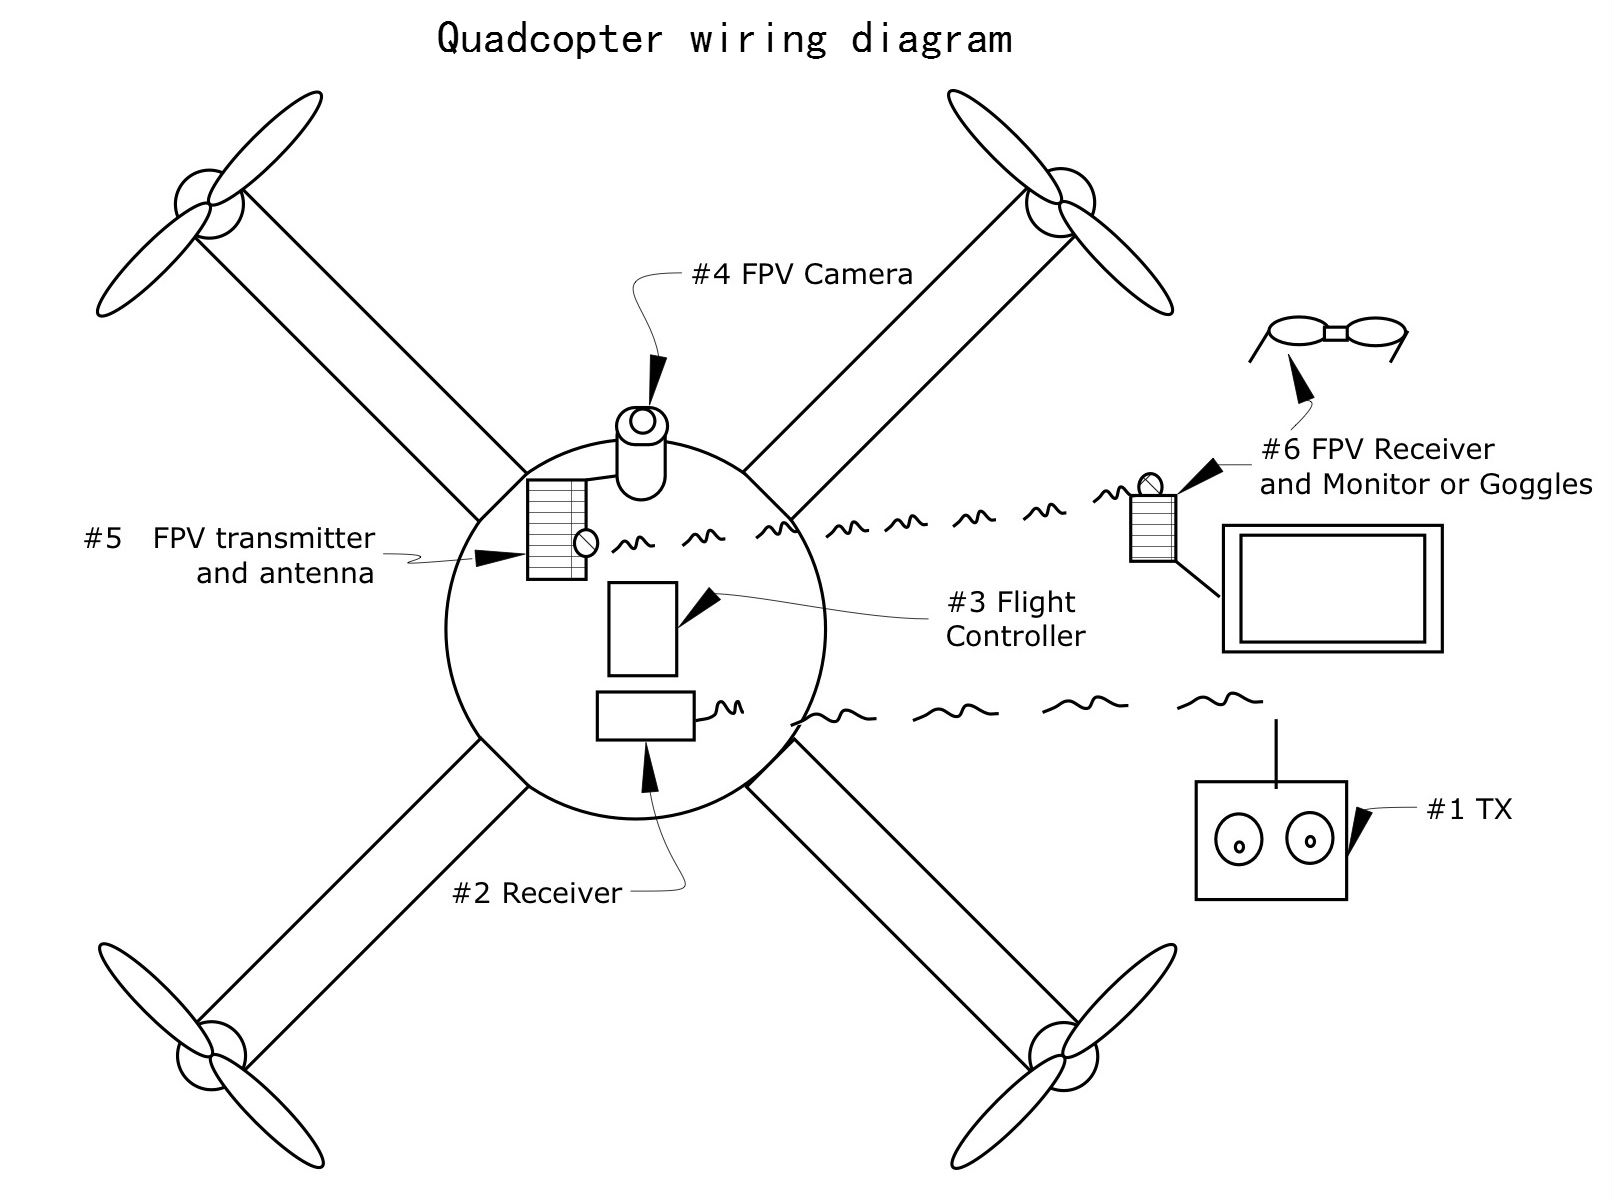 hight resolution of quadcopter wiring diagram guide rcdronegood com rh rcdronegood com